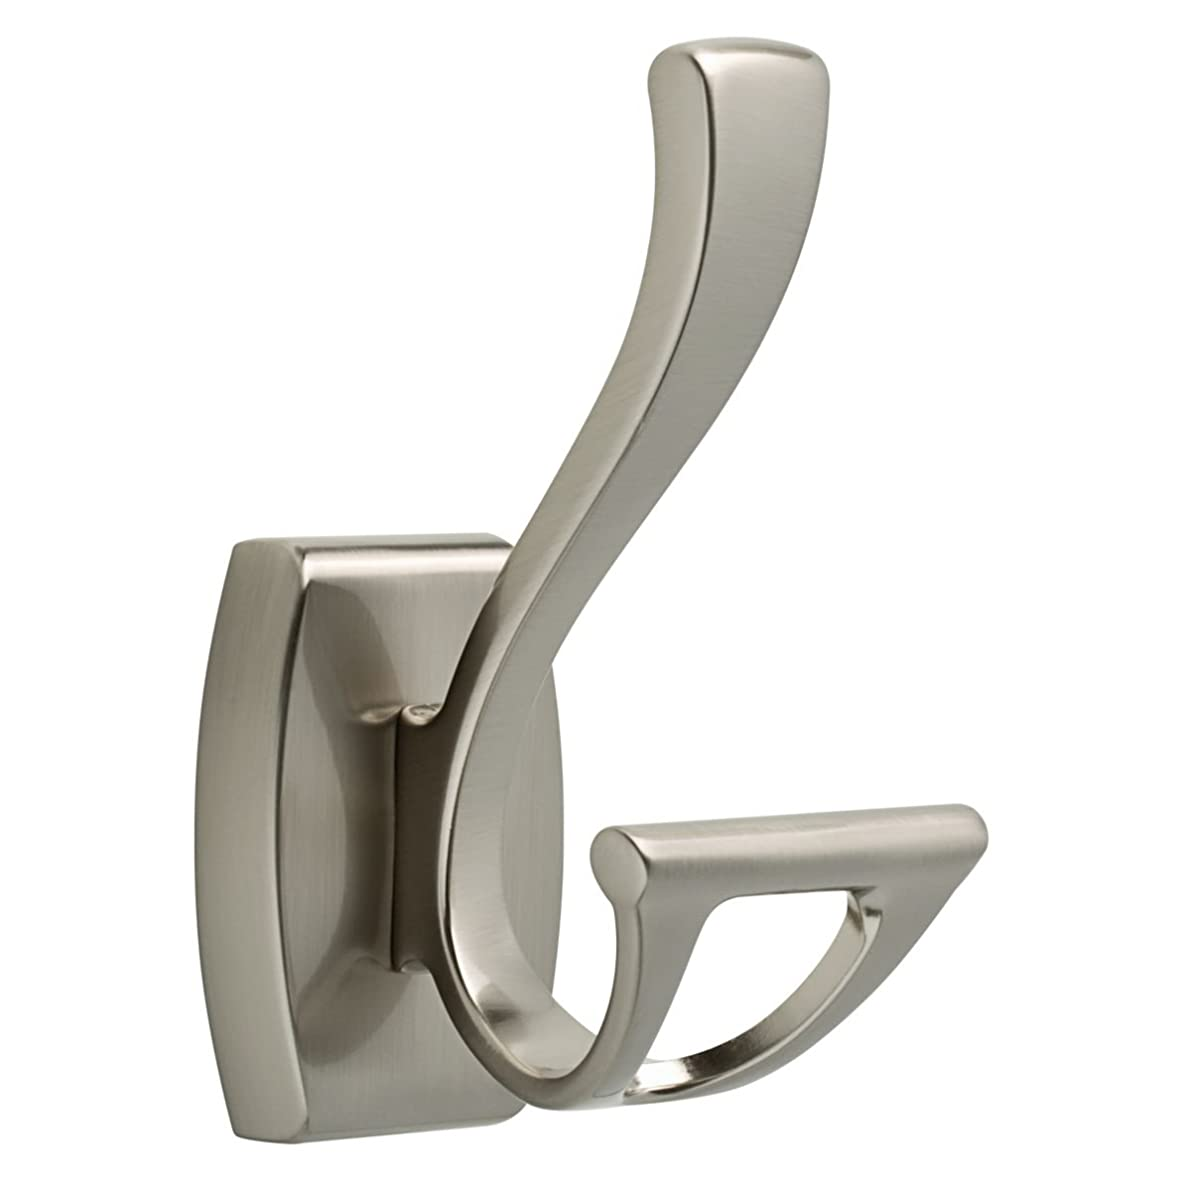 DELTA FAUCET 135241 Dansant Double Robe Hook, SpotShield Brushed Nickel